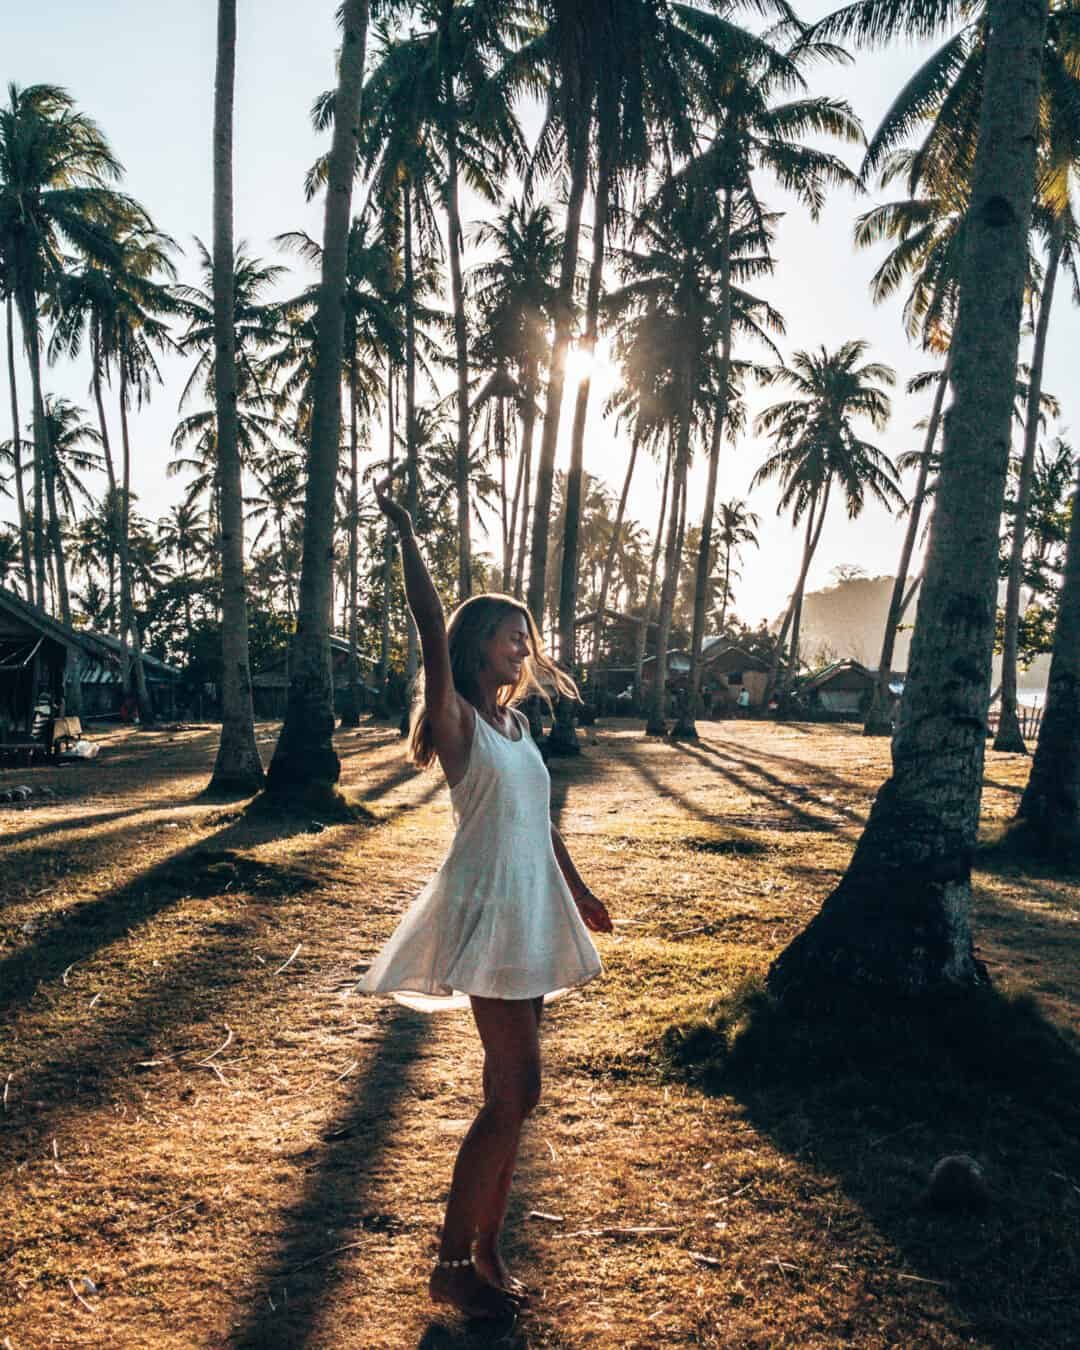 Women is dancing between palm trees at Nacpan Beach El Nido Philippines